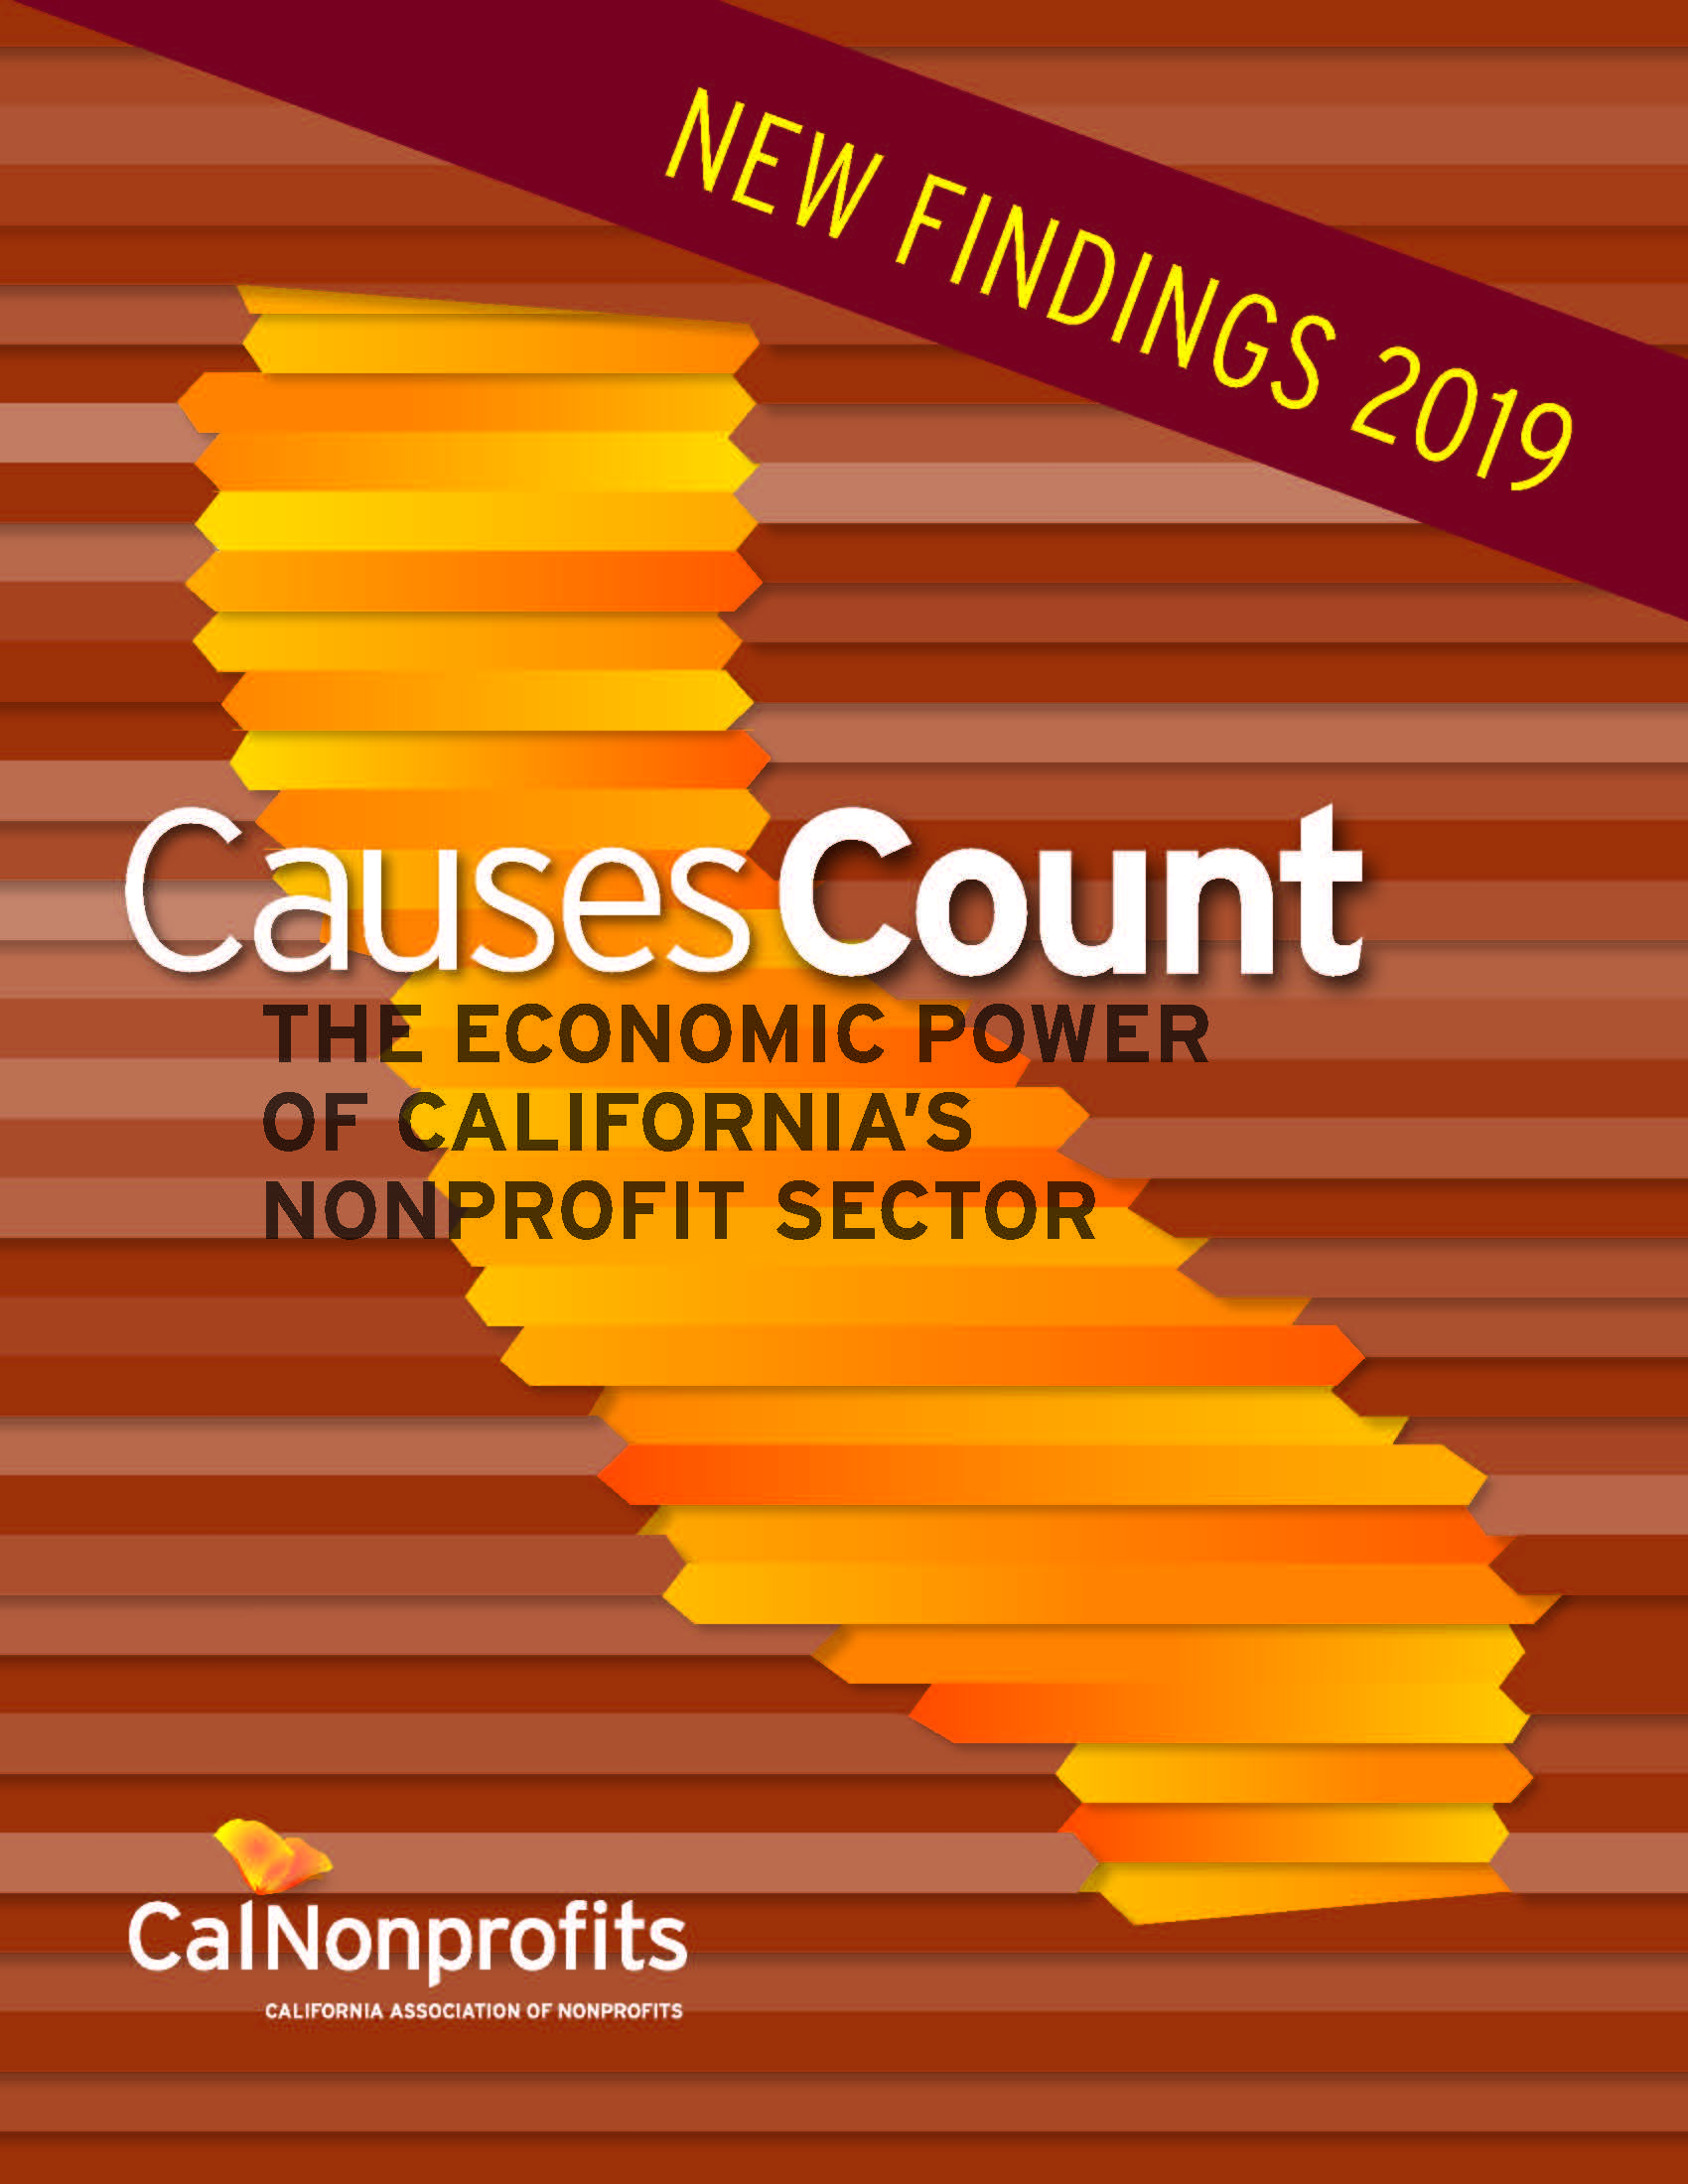 CausesCount New Findings 2019